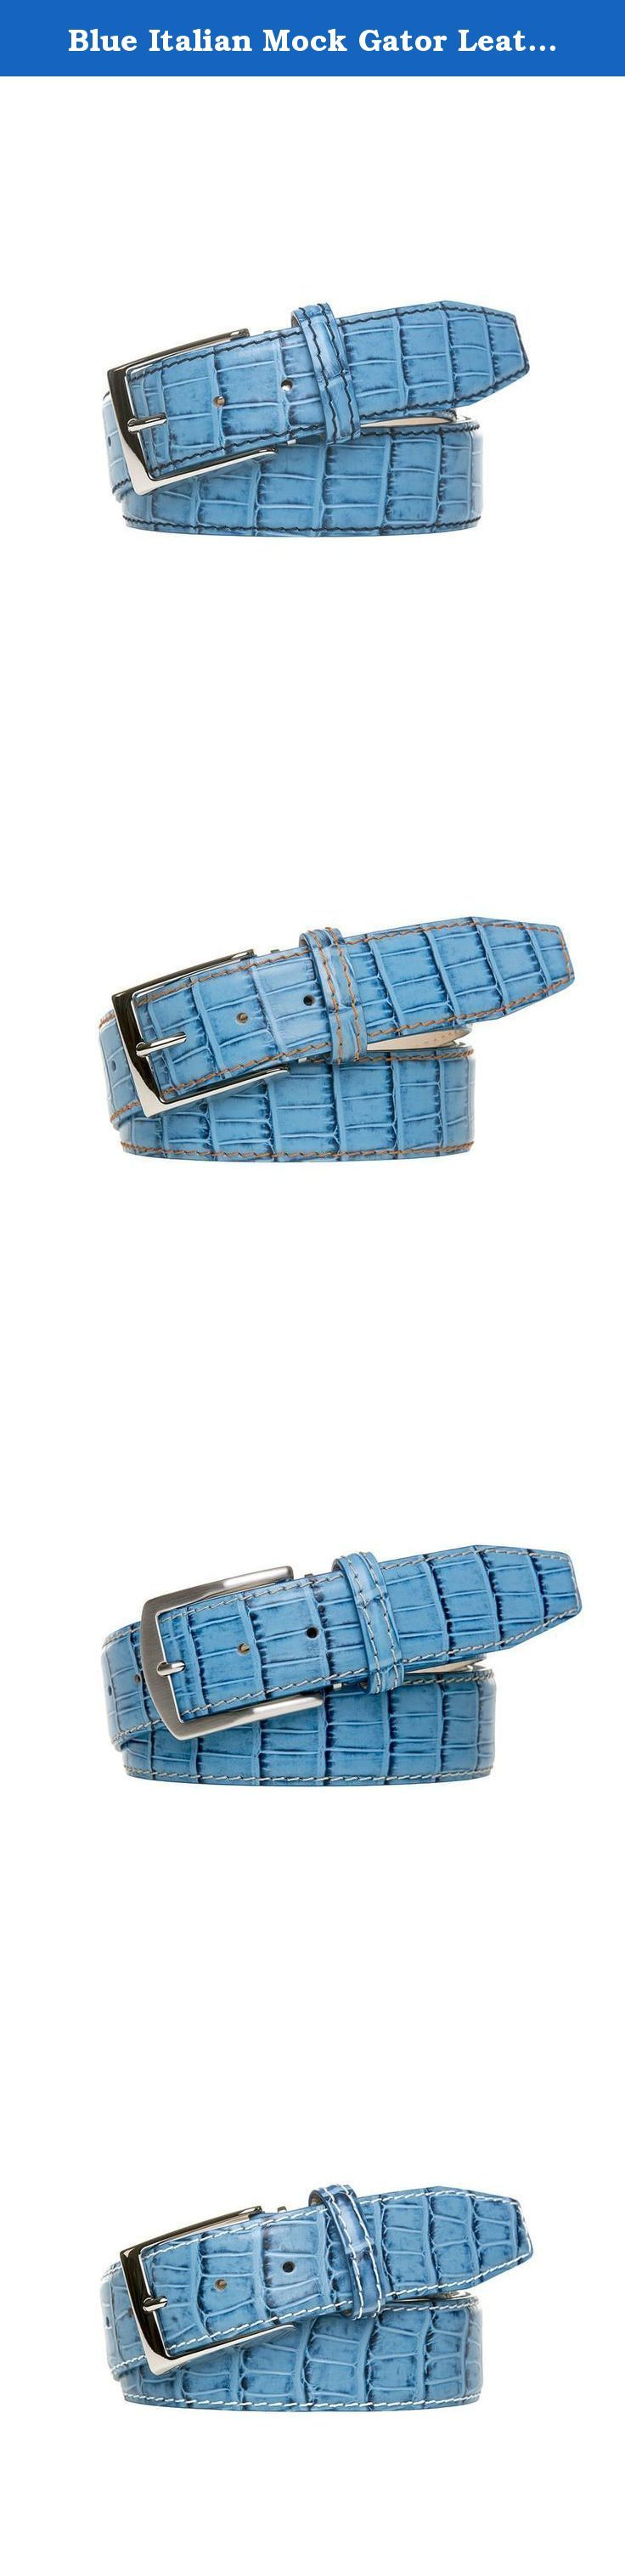 Blue Italian Mock Gator Leather Belt. Made from 100% Italian Calf Leather and handmade to order. All of our leather products are made in the USA. Each belt is designed with a Nubuck lining and solid brass palladium buckle to ensure extra durability. In addition, each belt comes with a signature travel bag to store your belt in.